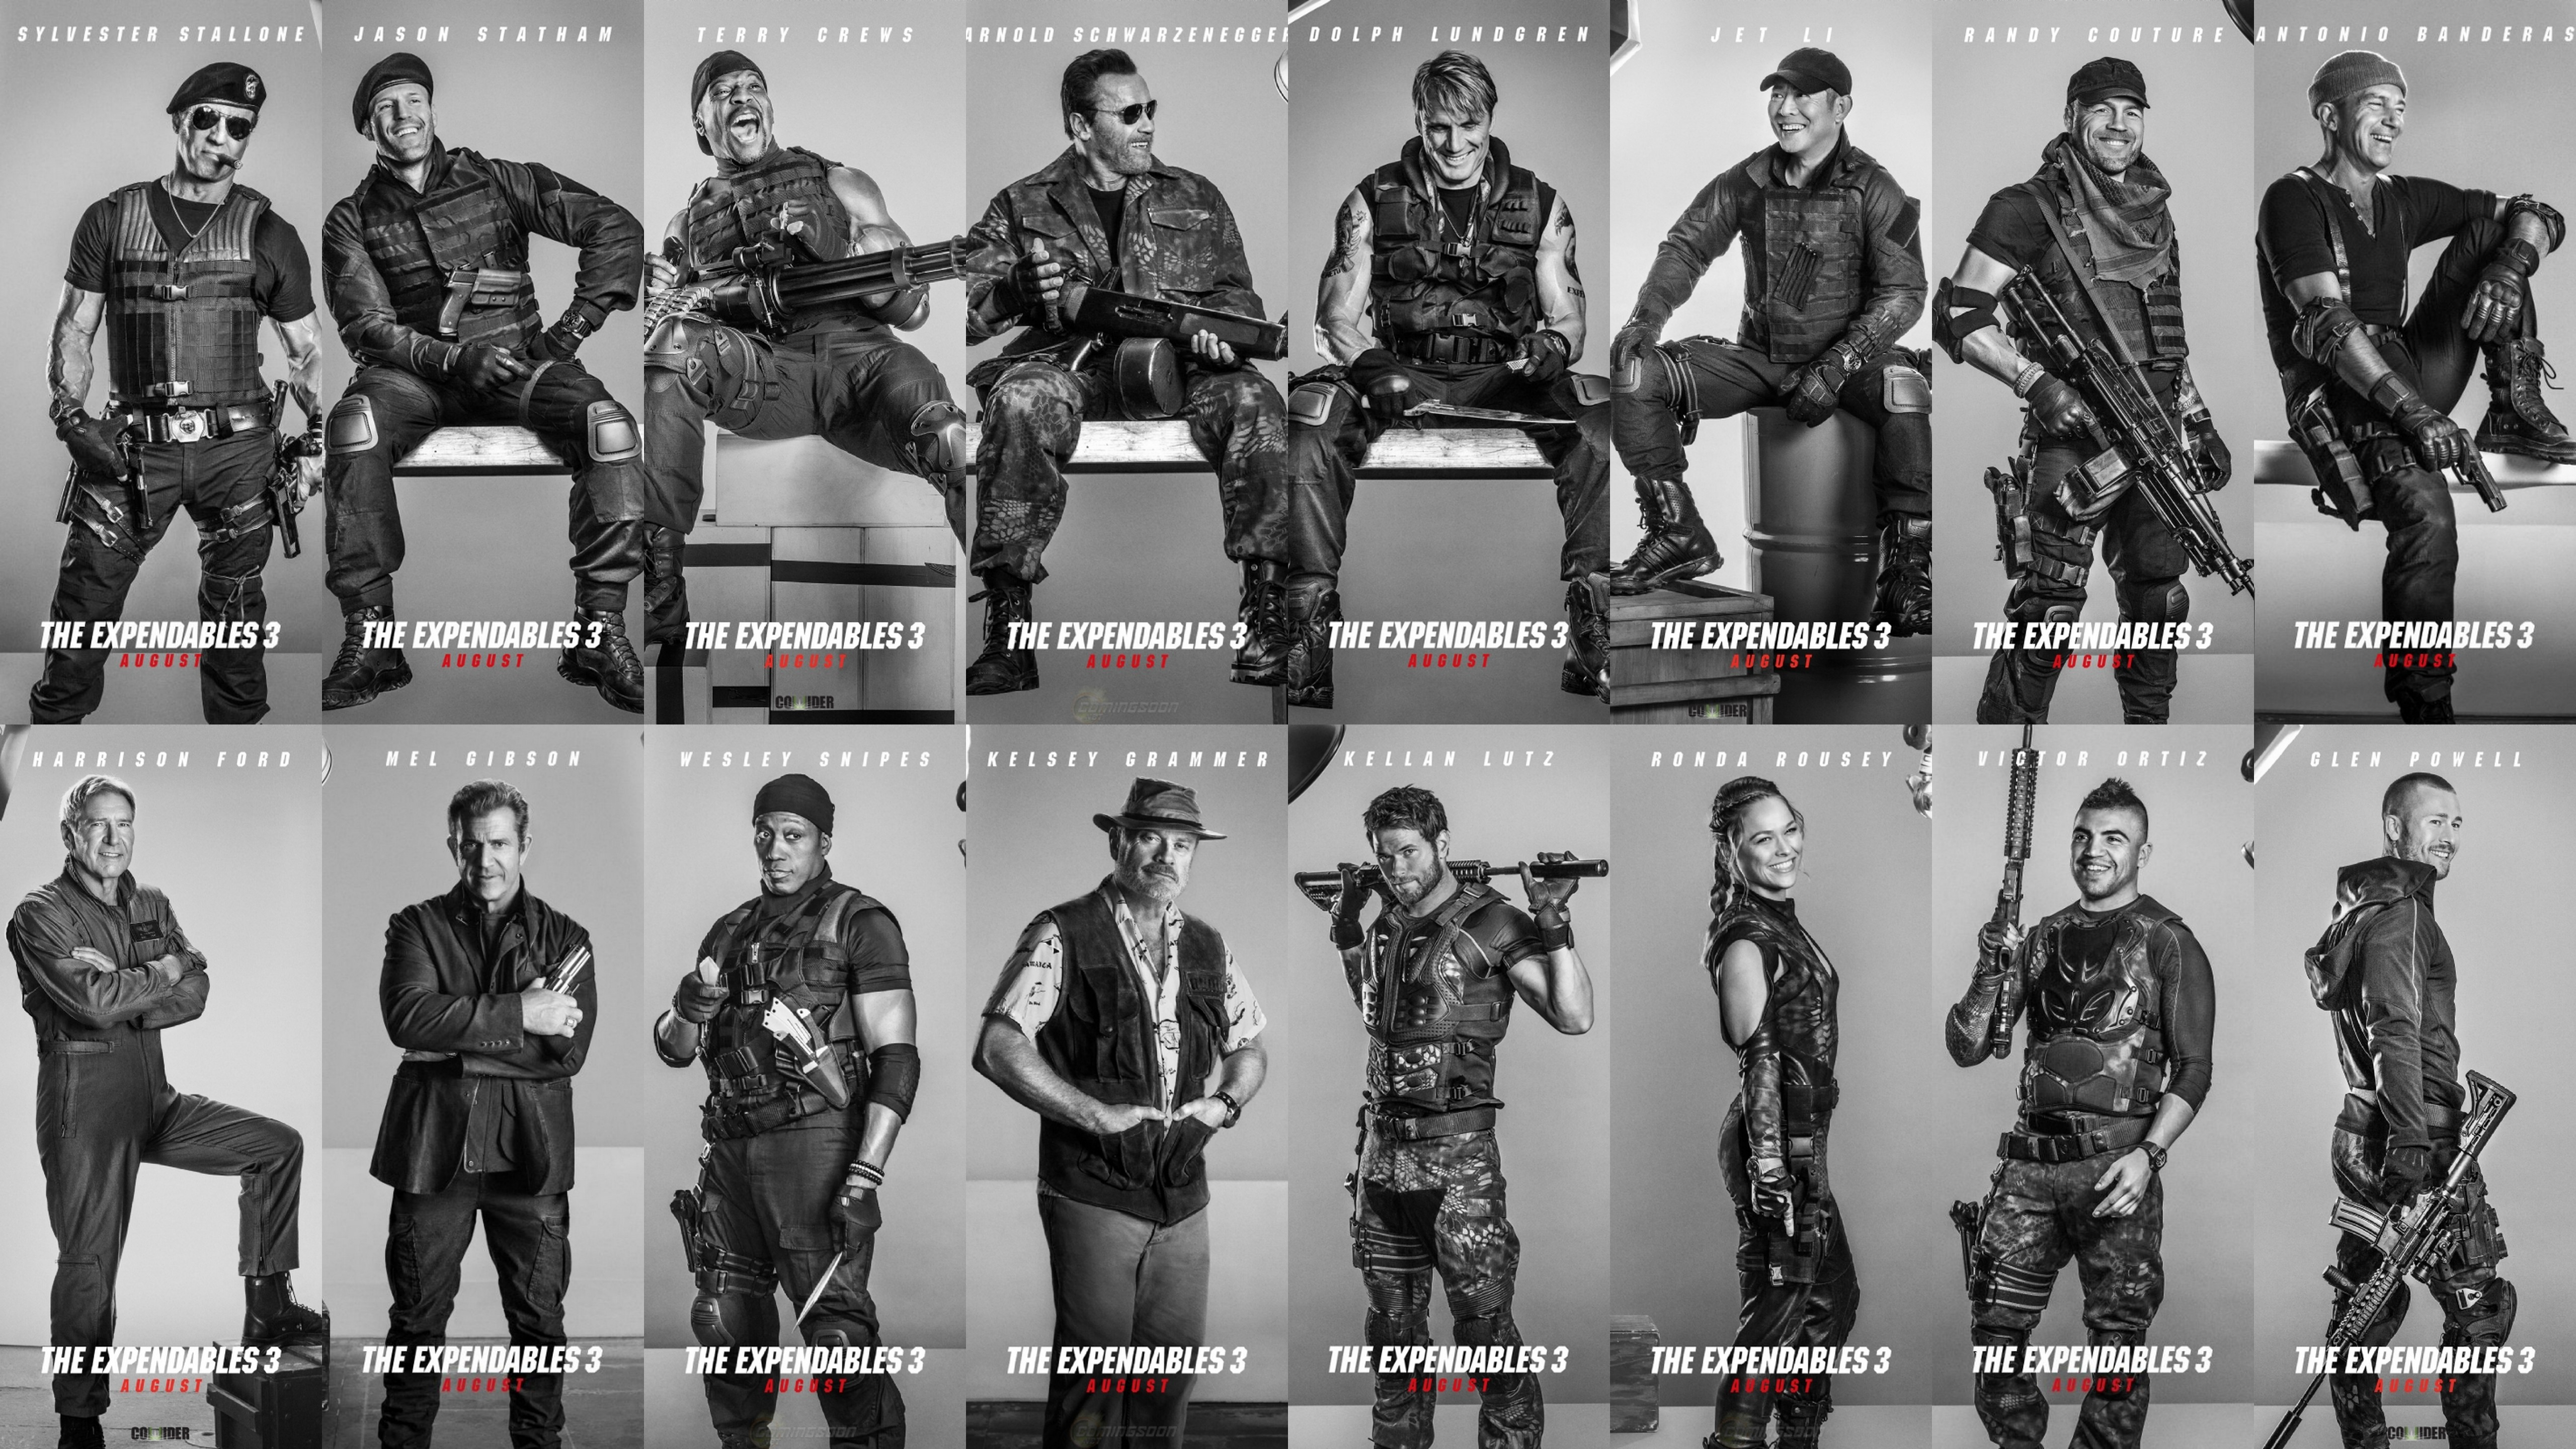 maac � new images from the expendables 3